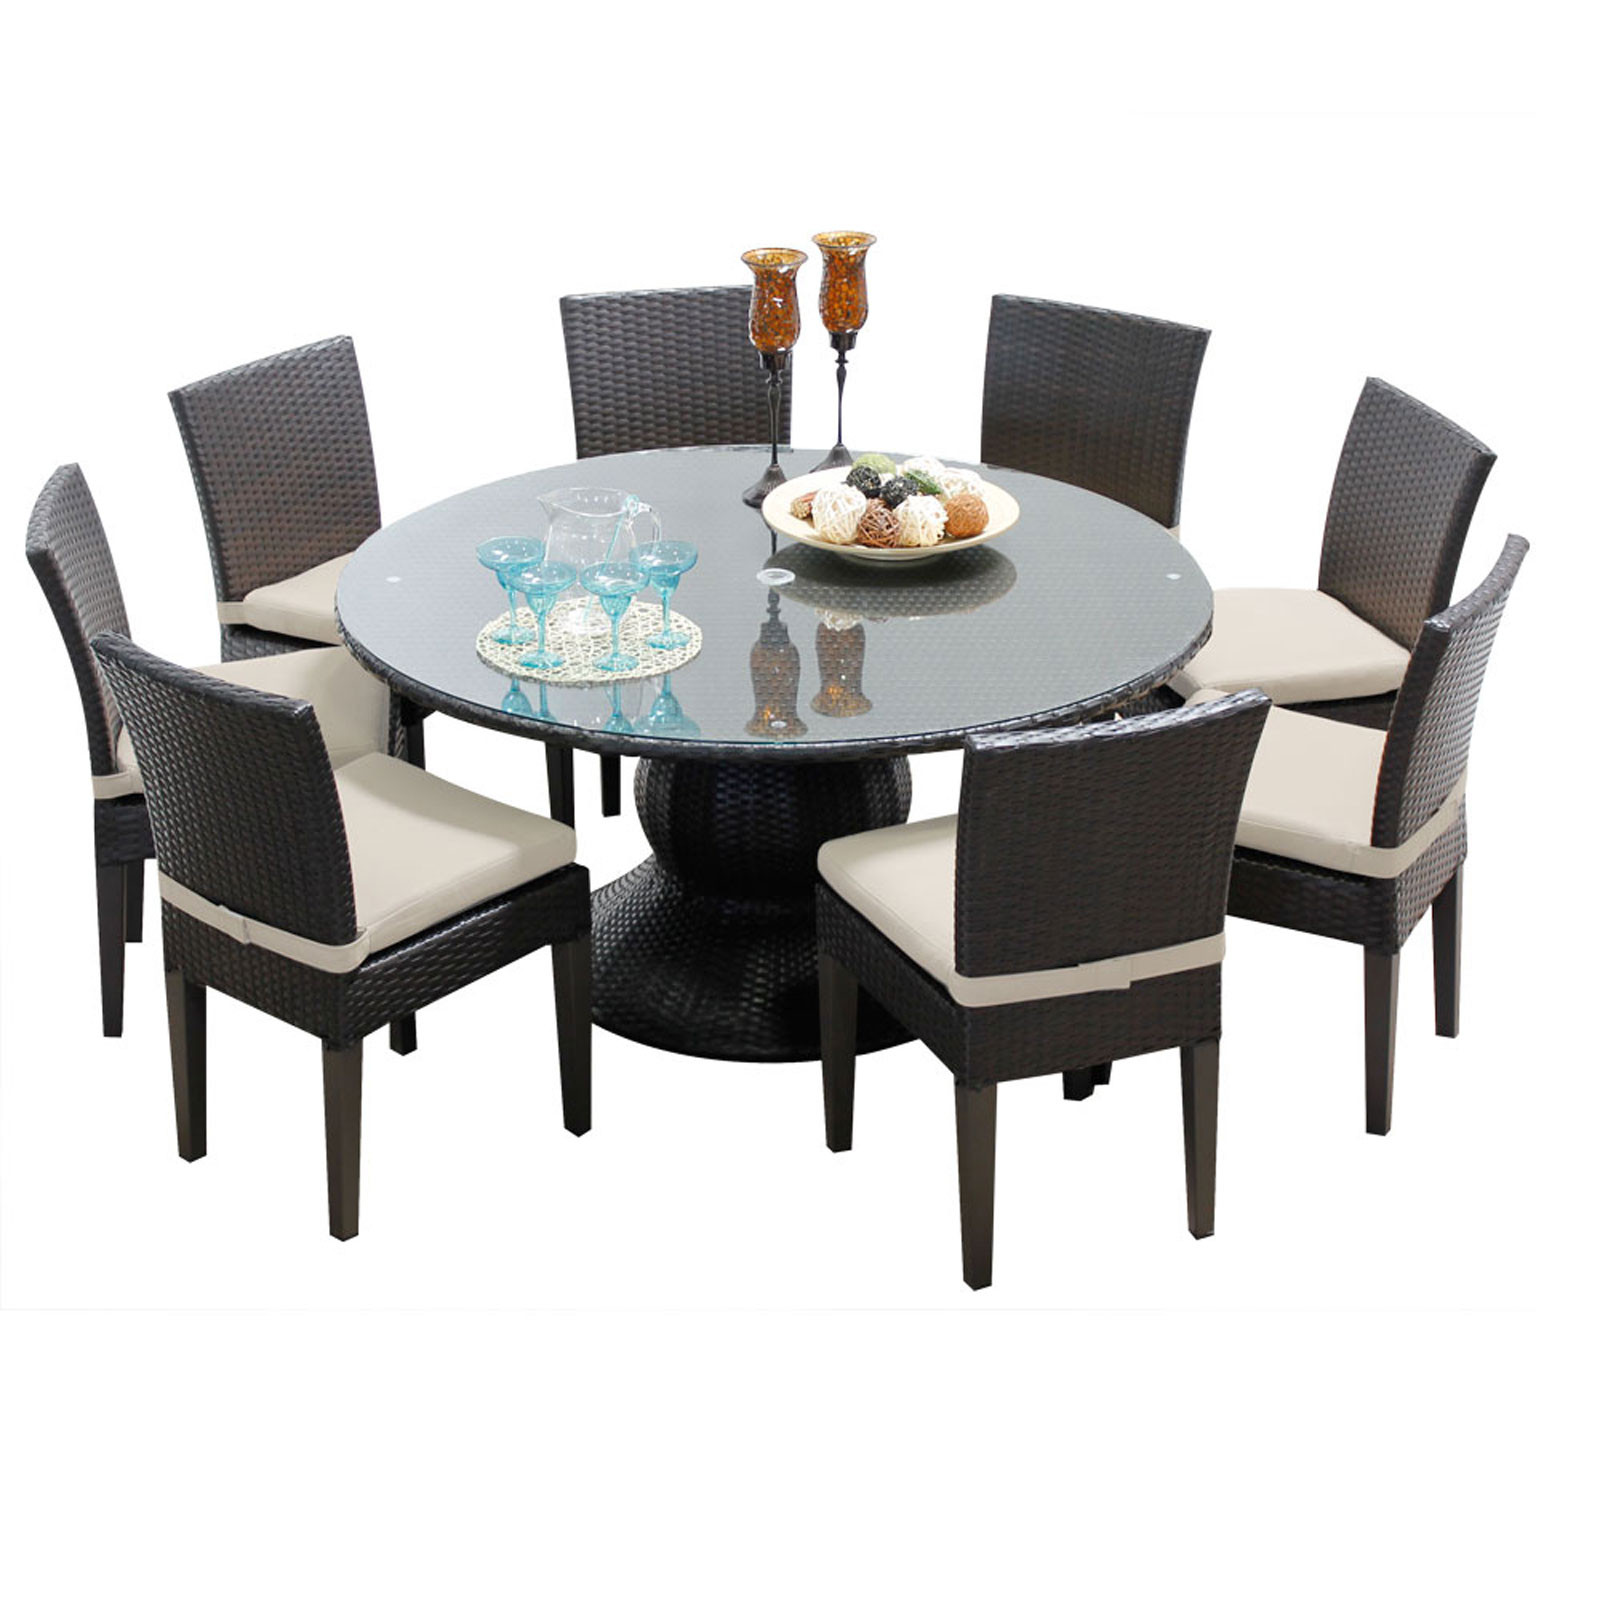 Best ideas about Walmart Dining Table Set . Save or Pin Patio Dining Sets Walmart Outdoor Table Ravishing Now.